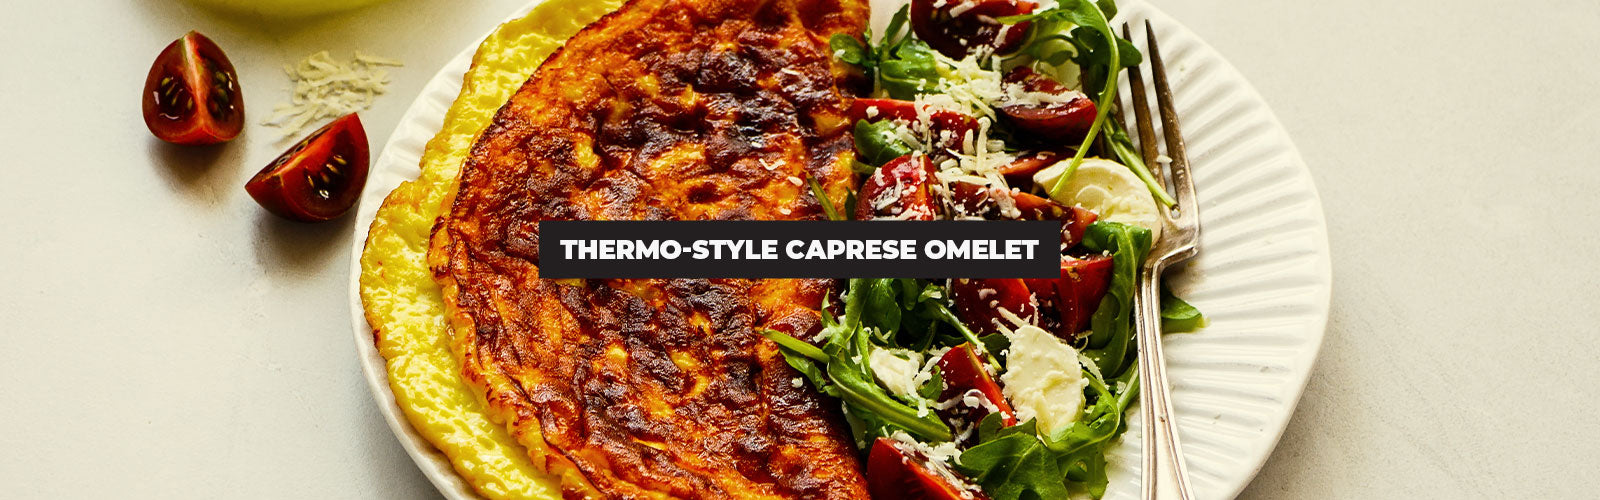 Thermo-Style Caprese Omelet